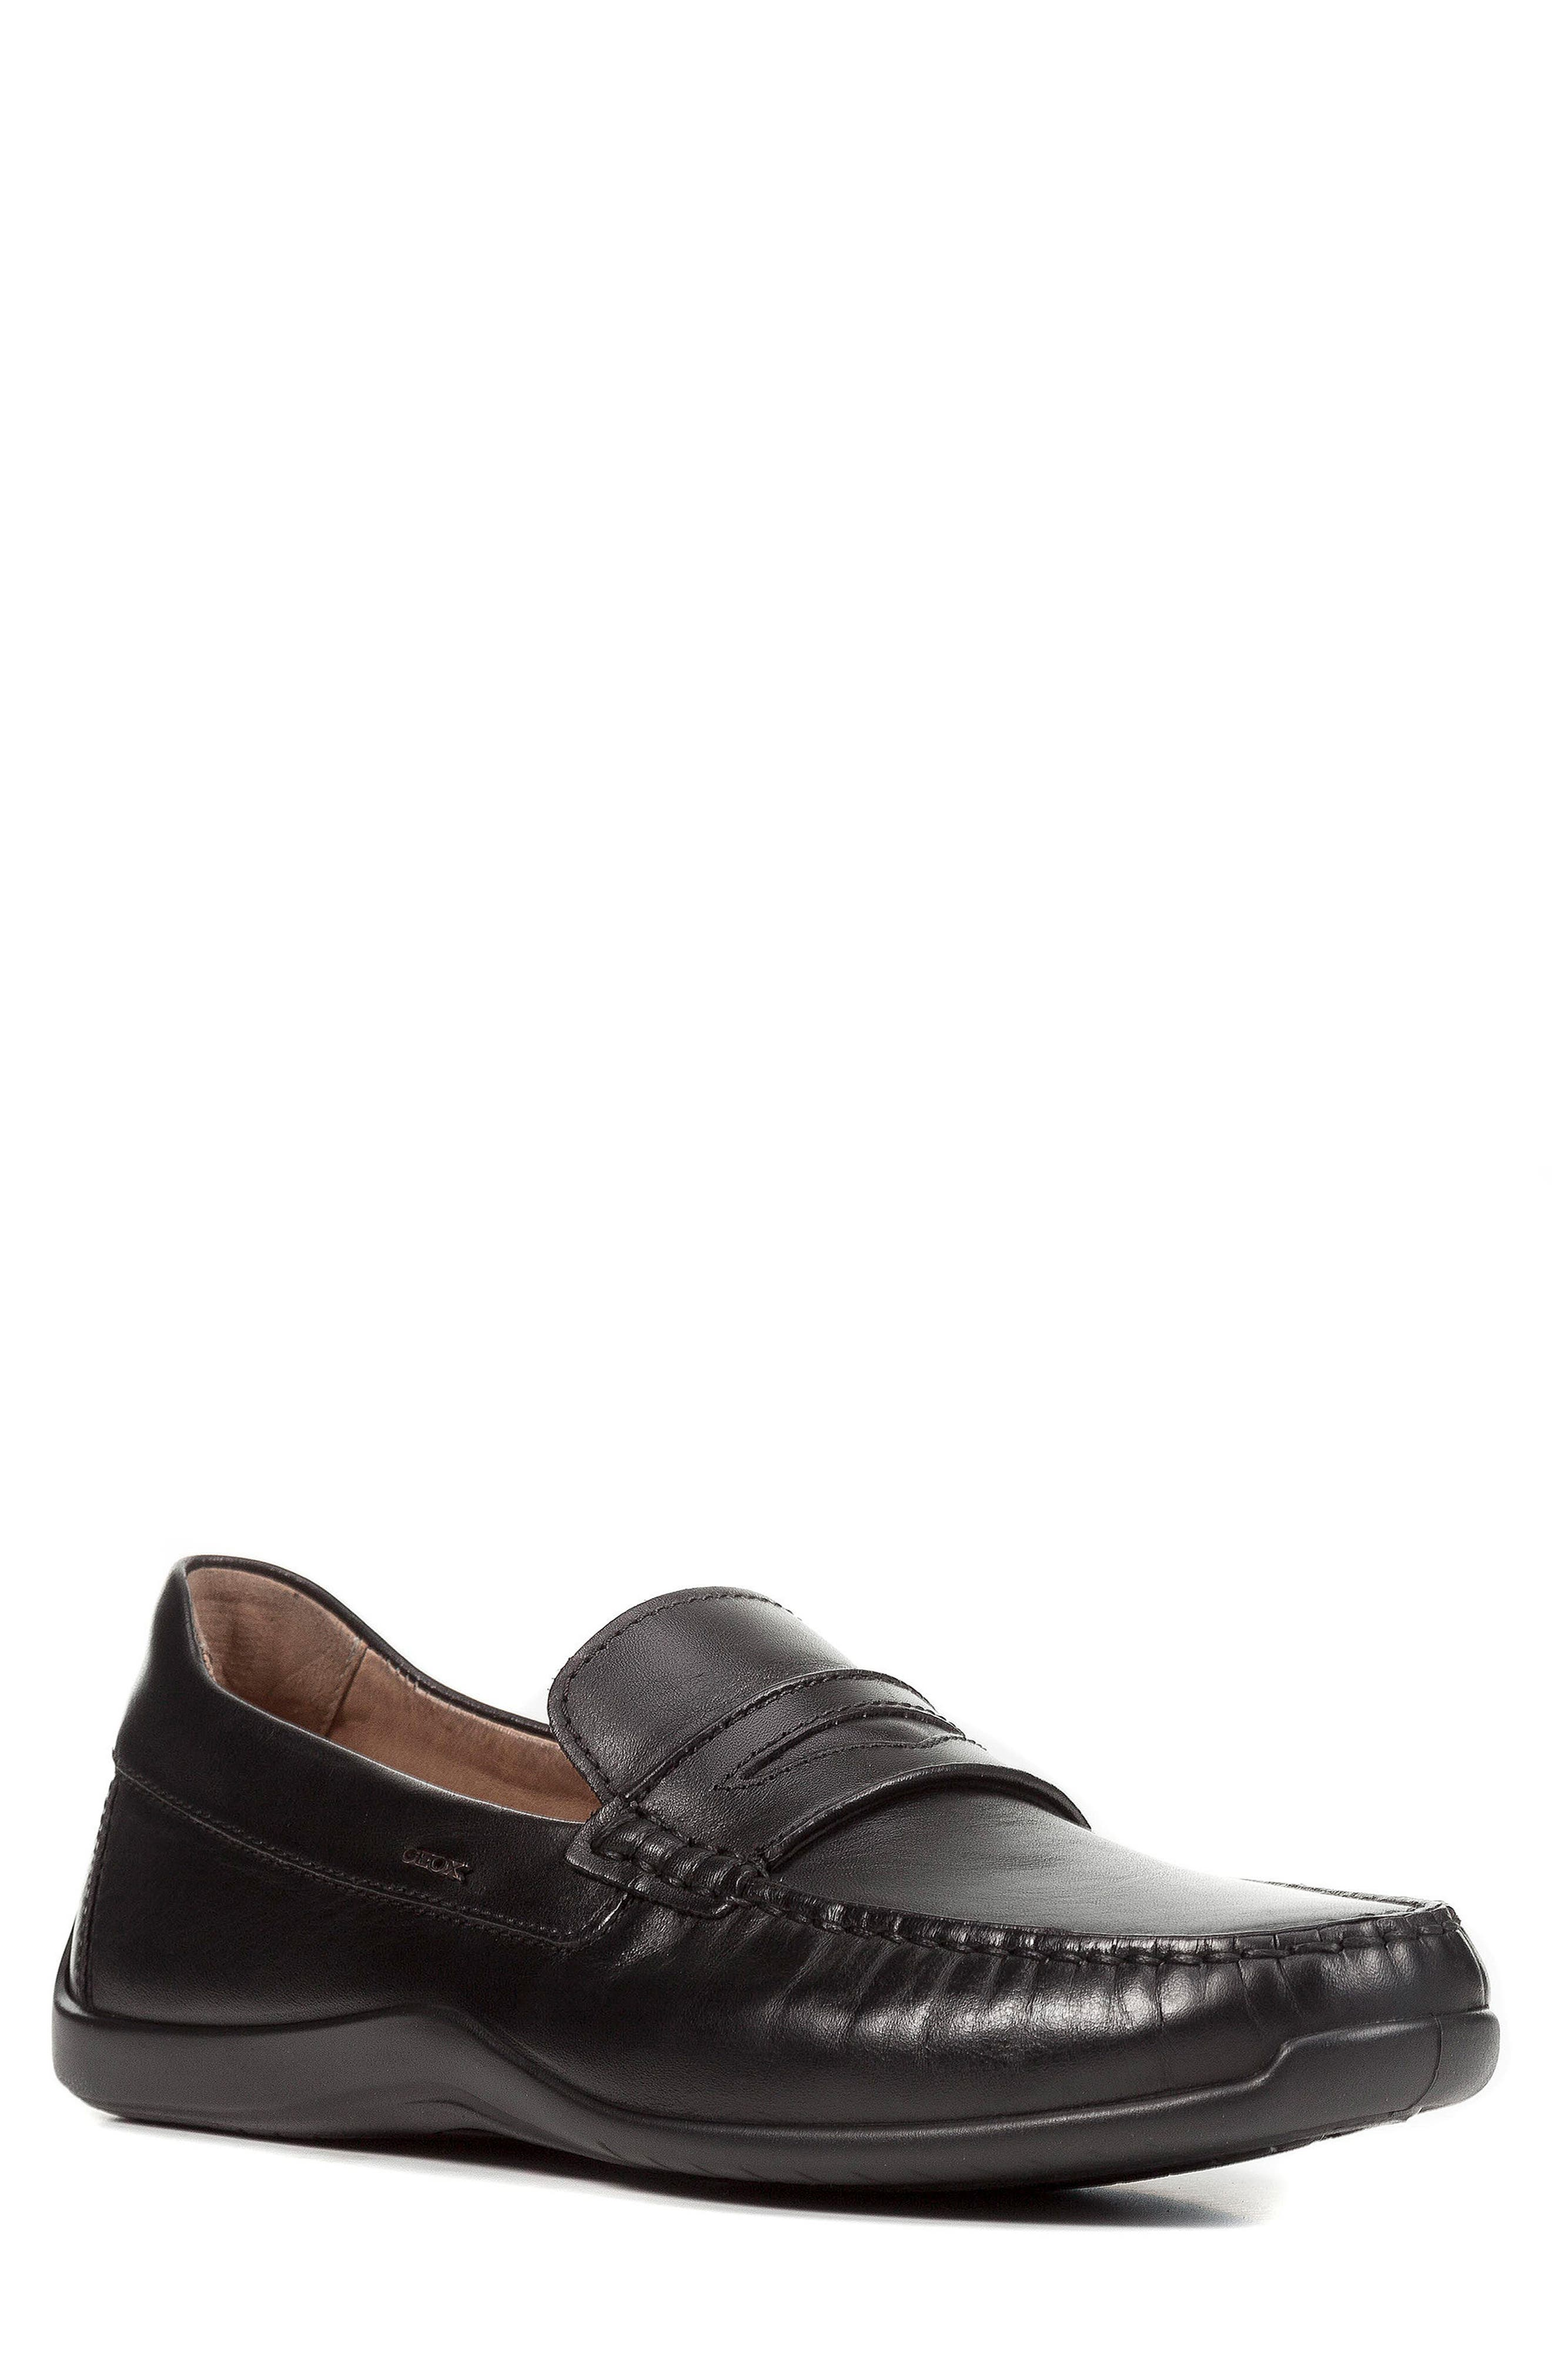 Xense Penny Loafer,                             Main thumbnail 1, color,                             Black Leather